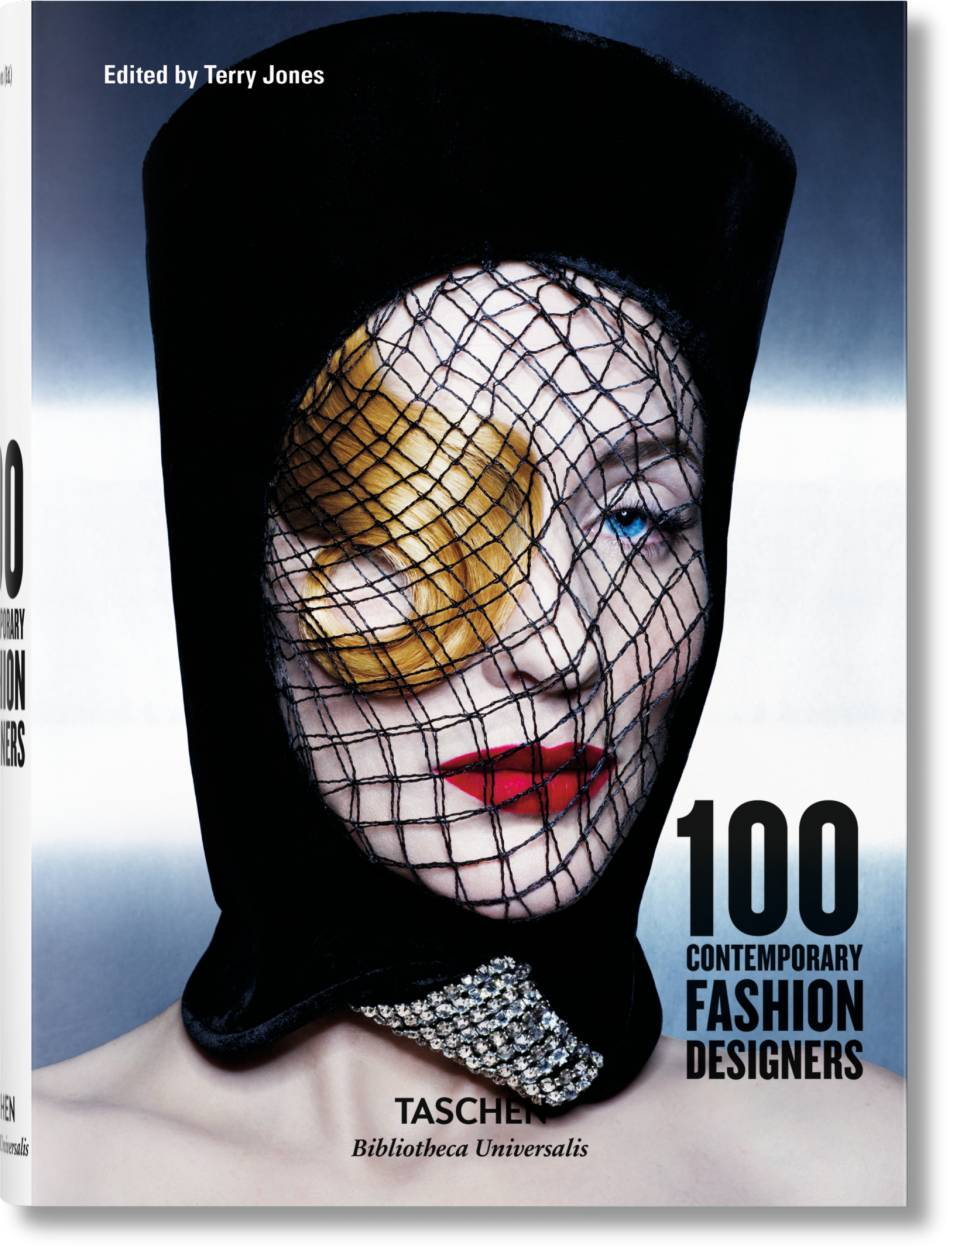 100 Contemporary Fashion Designers - image 1